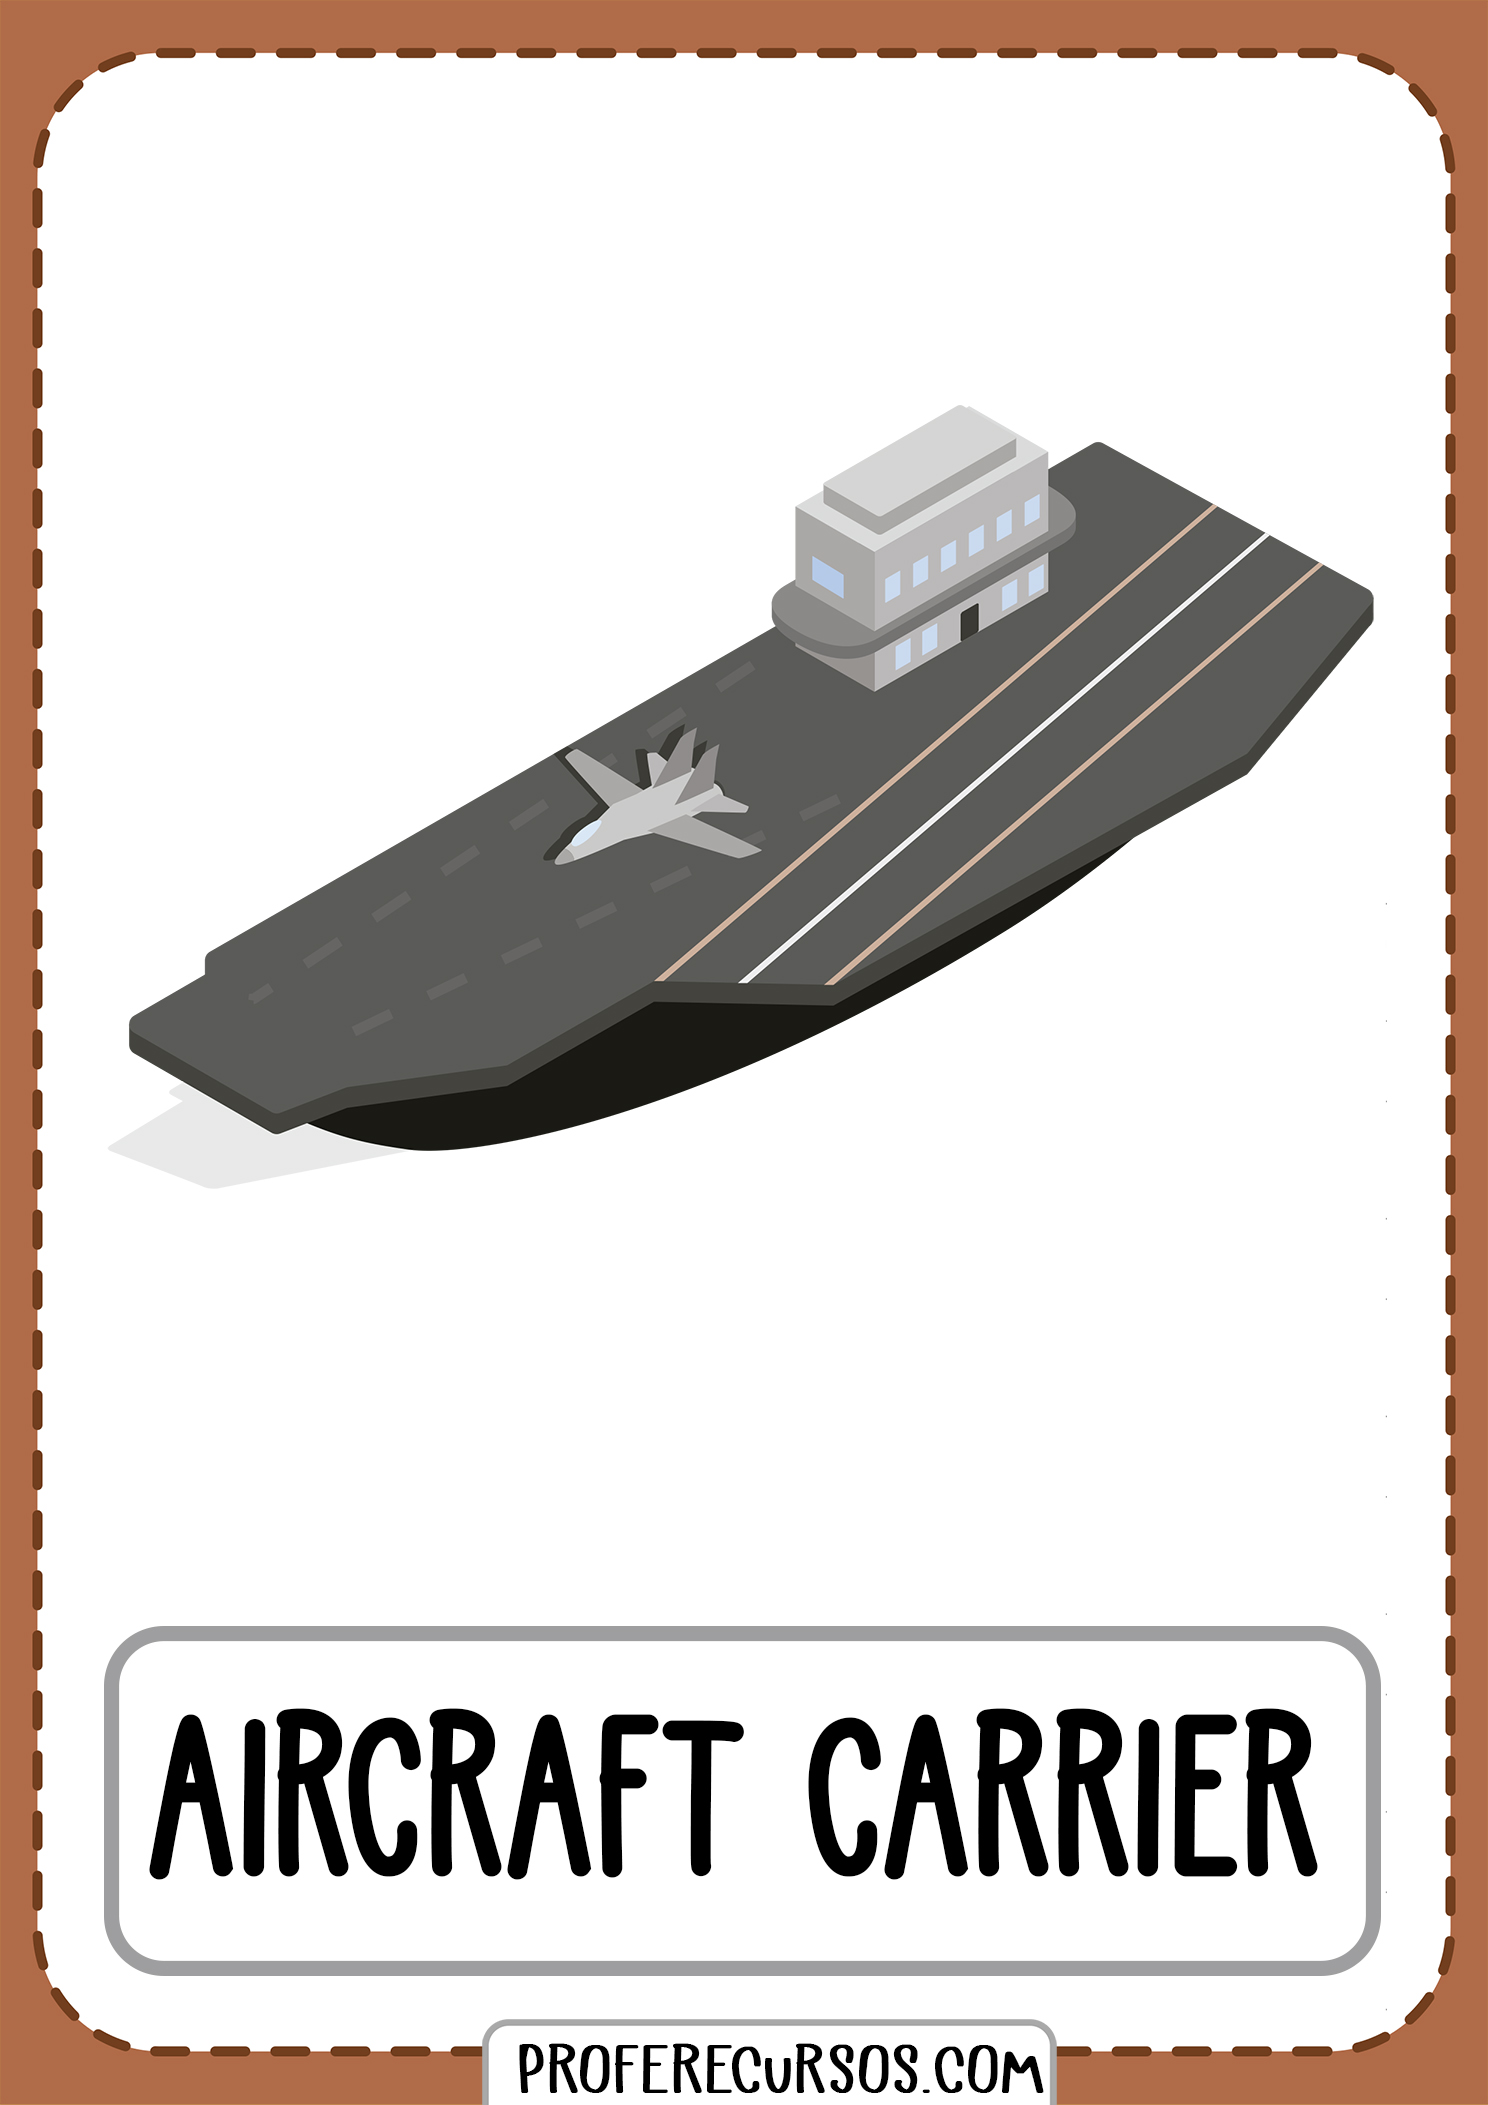 Means-of-transport-vocabulary-aircraft-carrier